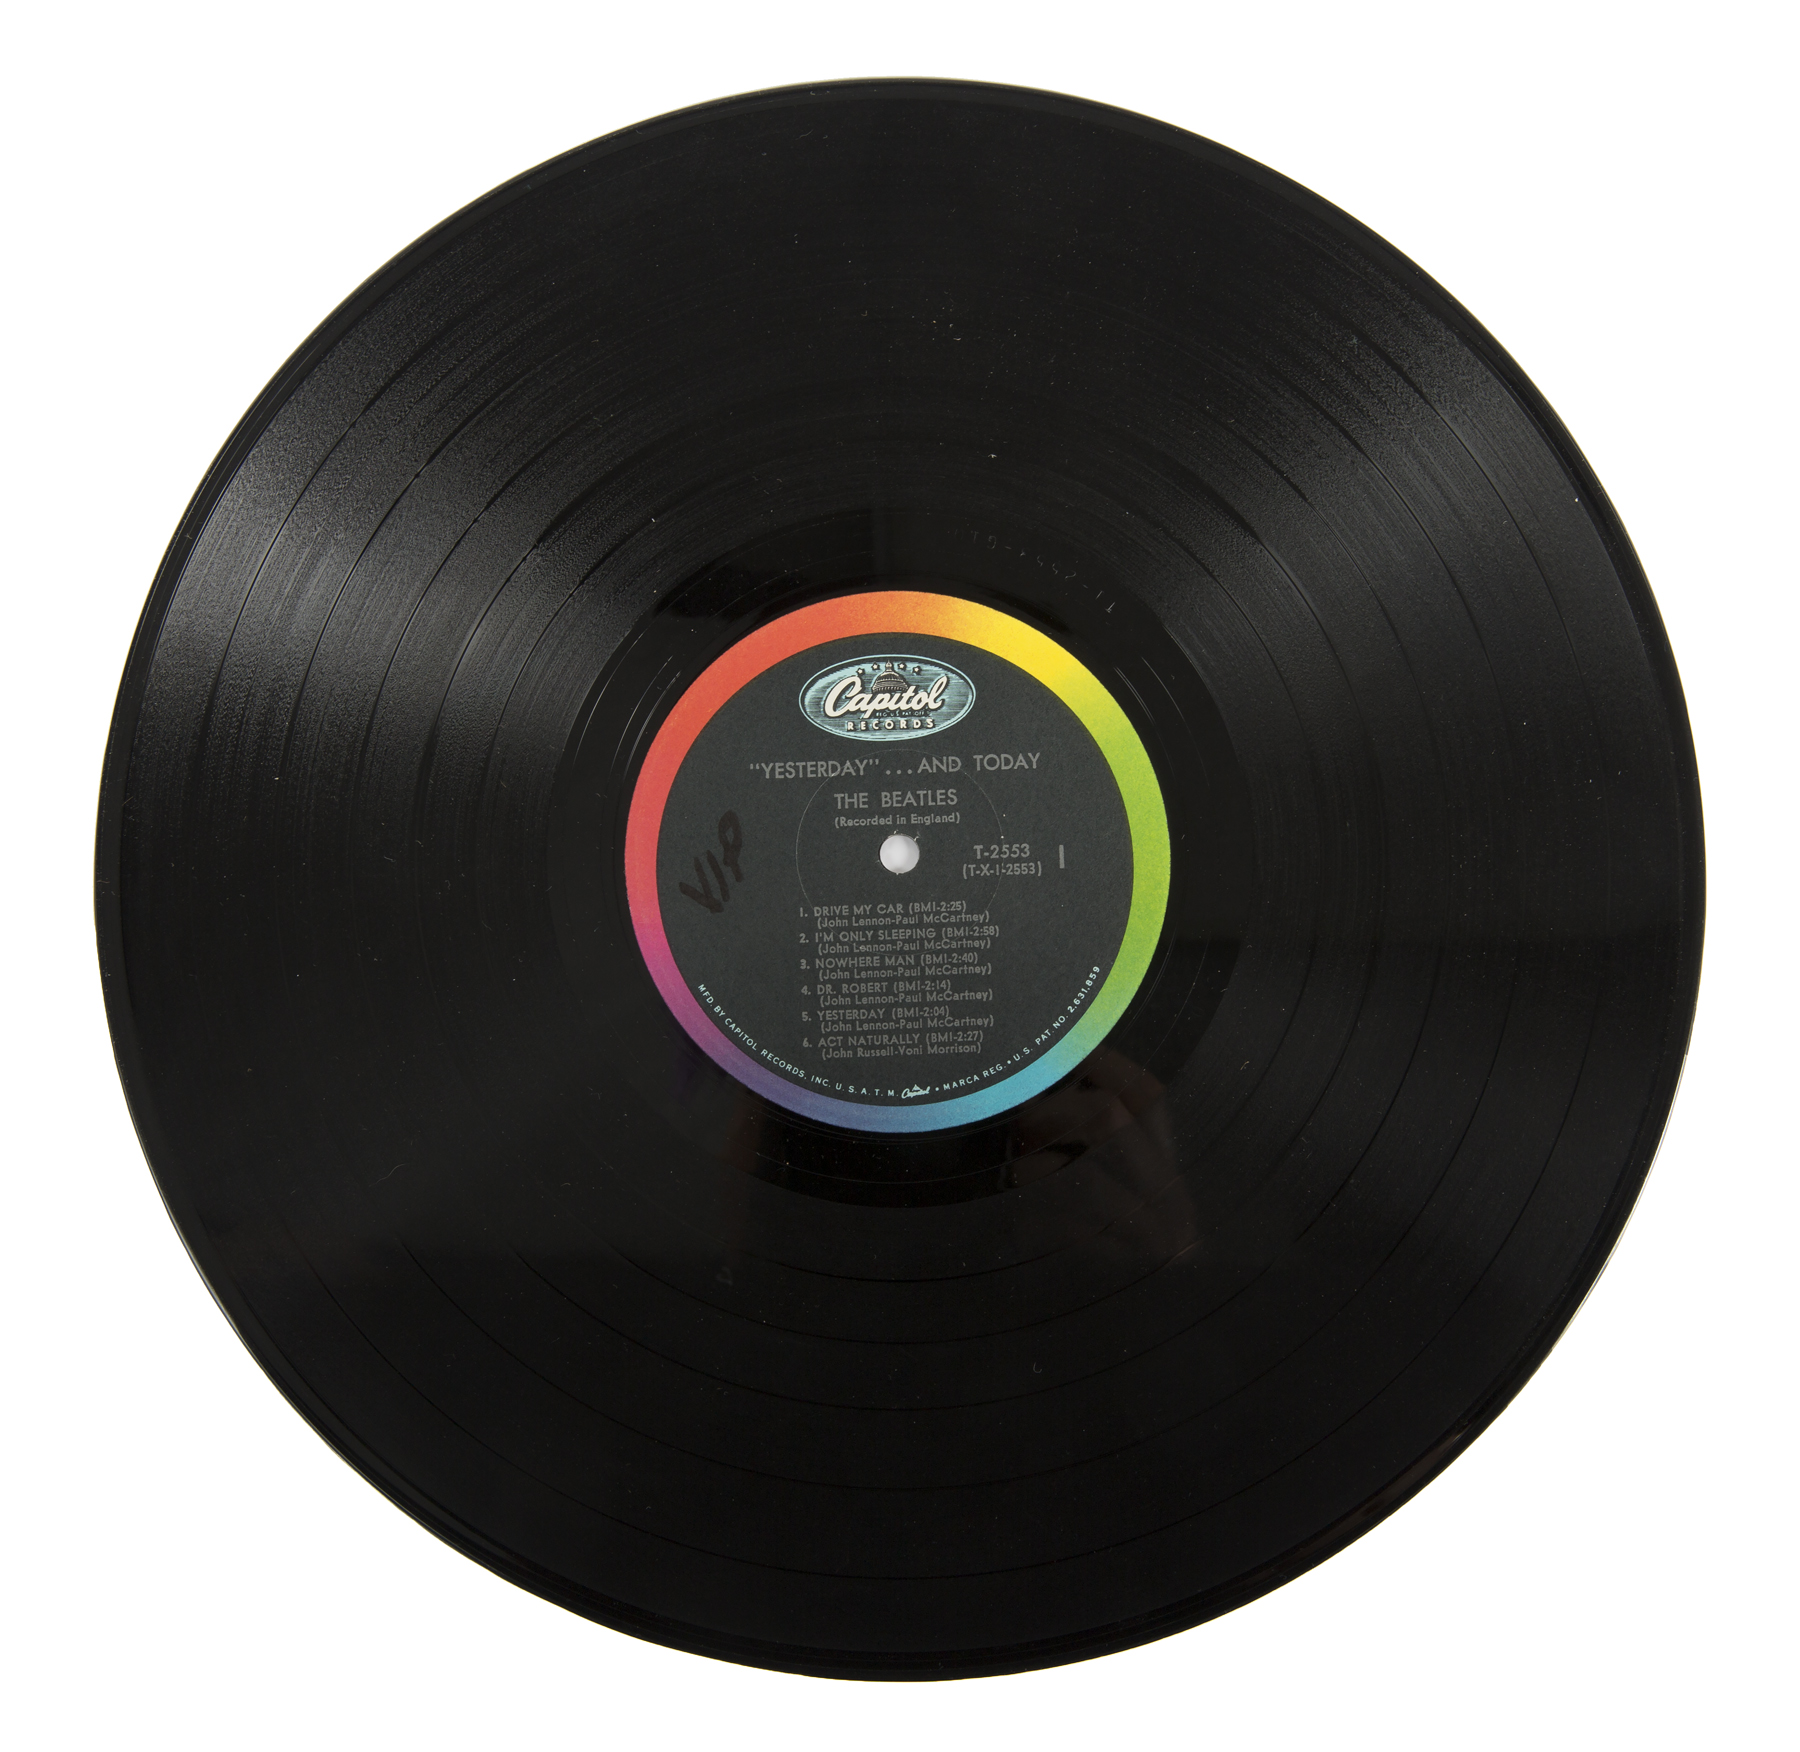 "An image of the vinyl record from John Lennon's personal copy of the Beatles ""Butcher"" album cover. He did take it out and play it."